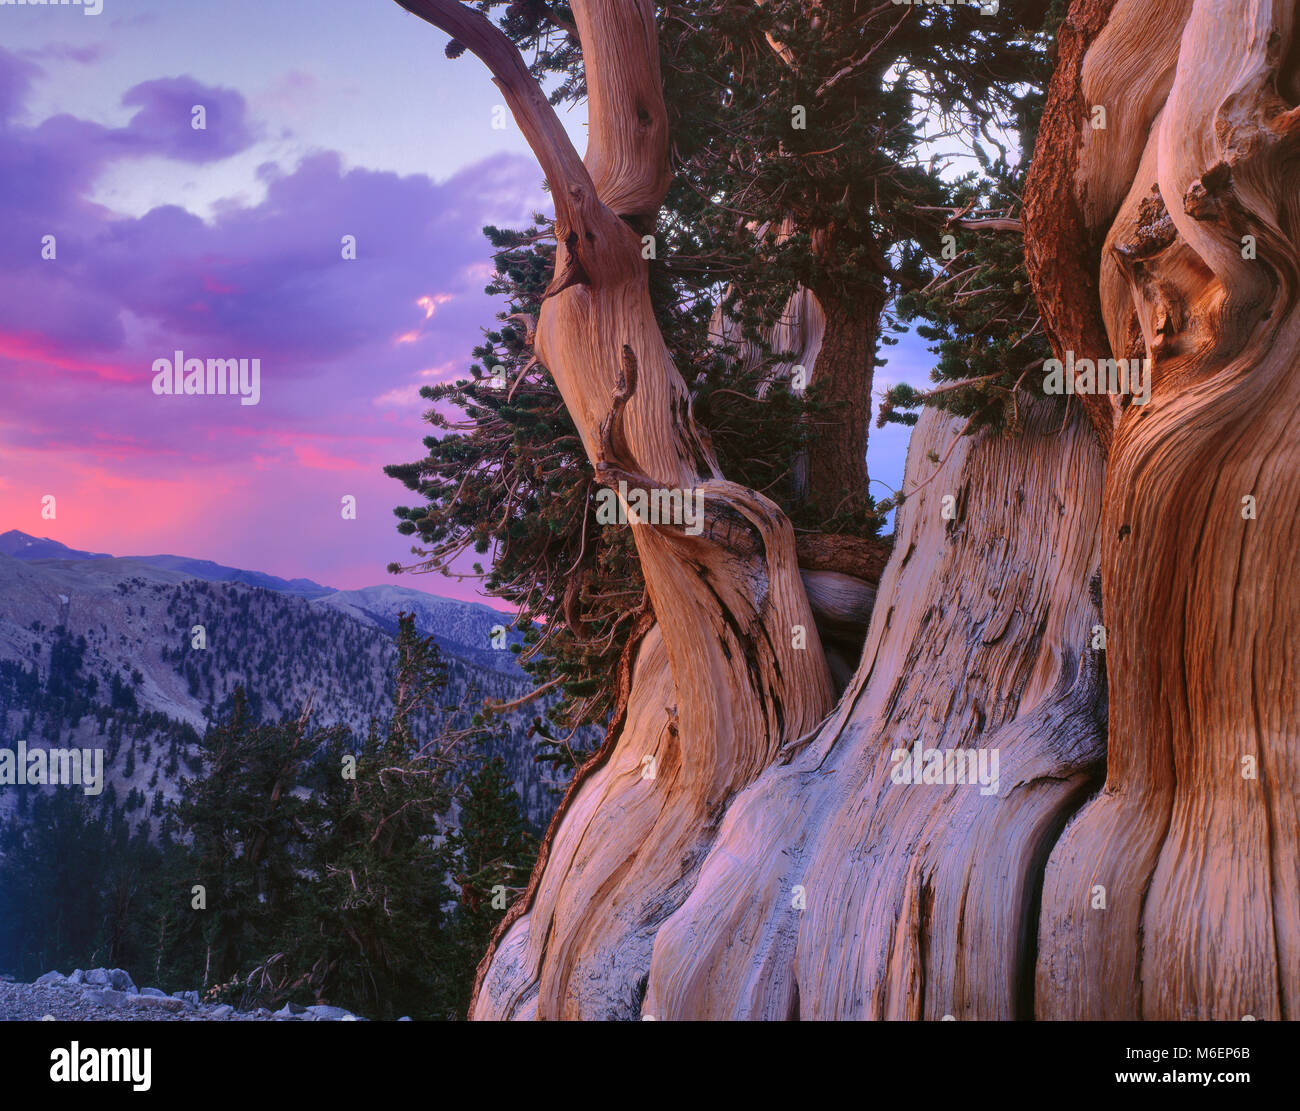 Sunset, Bristlecone Pine, Pinus longaeva, White Mountains, Inyo National Forest, Eastern Sierra, California - Stock Image